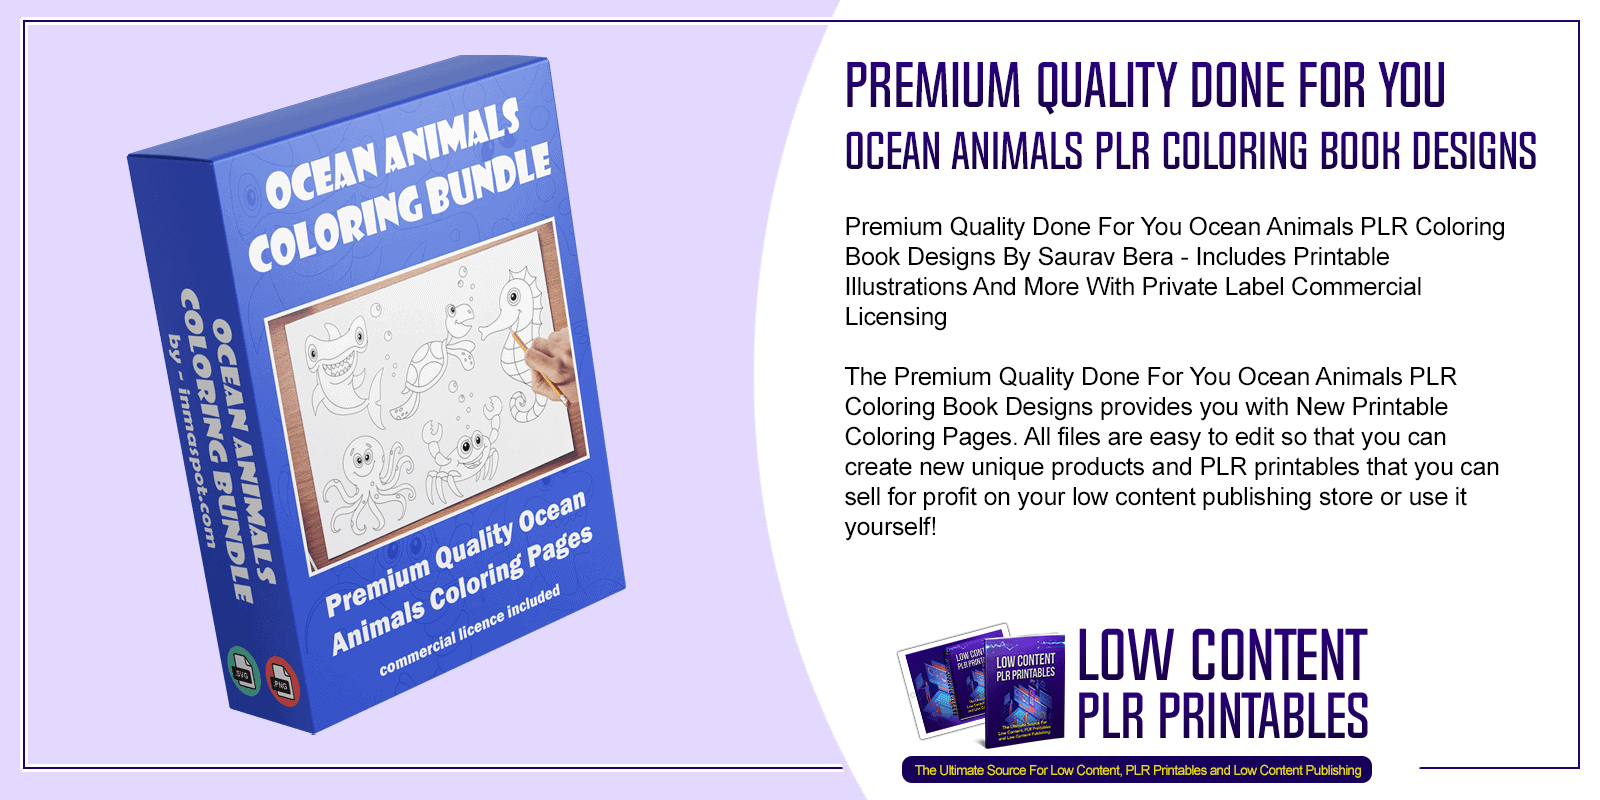 Premium Quality Done For You Ocean Animals PLR Coloring Book Designs